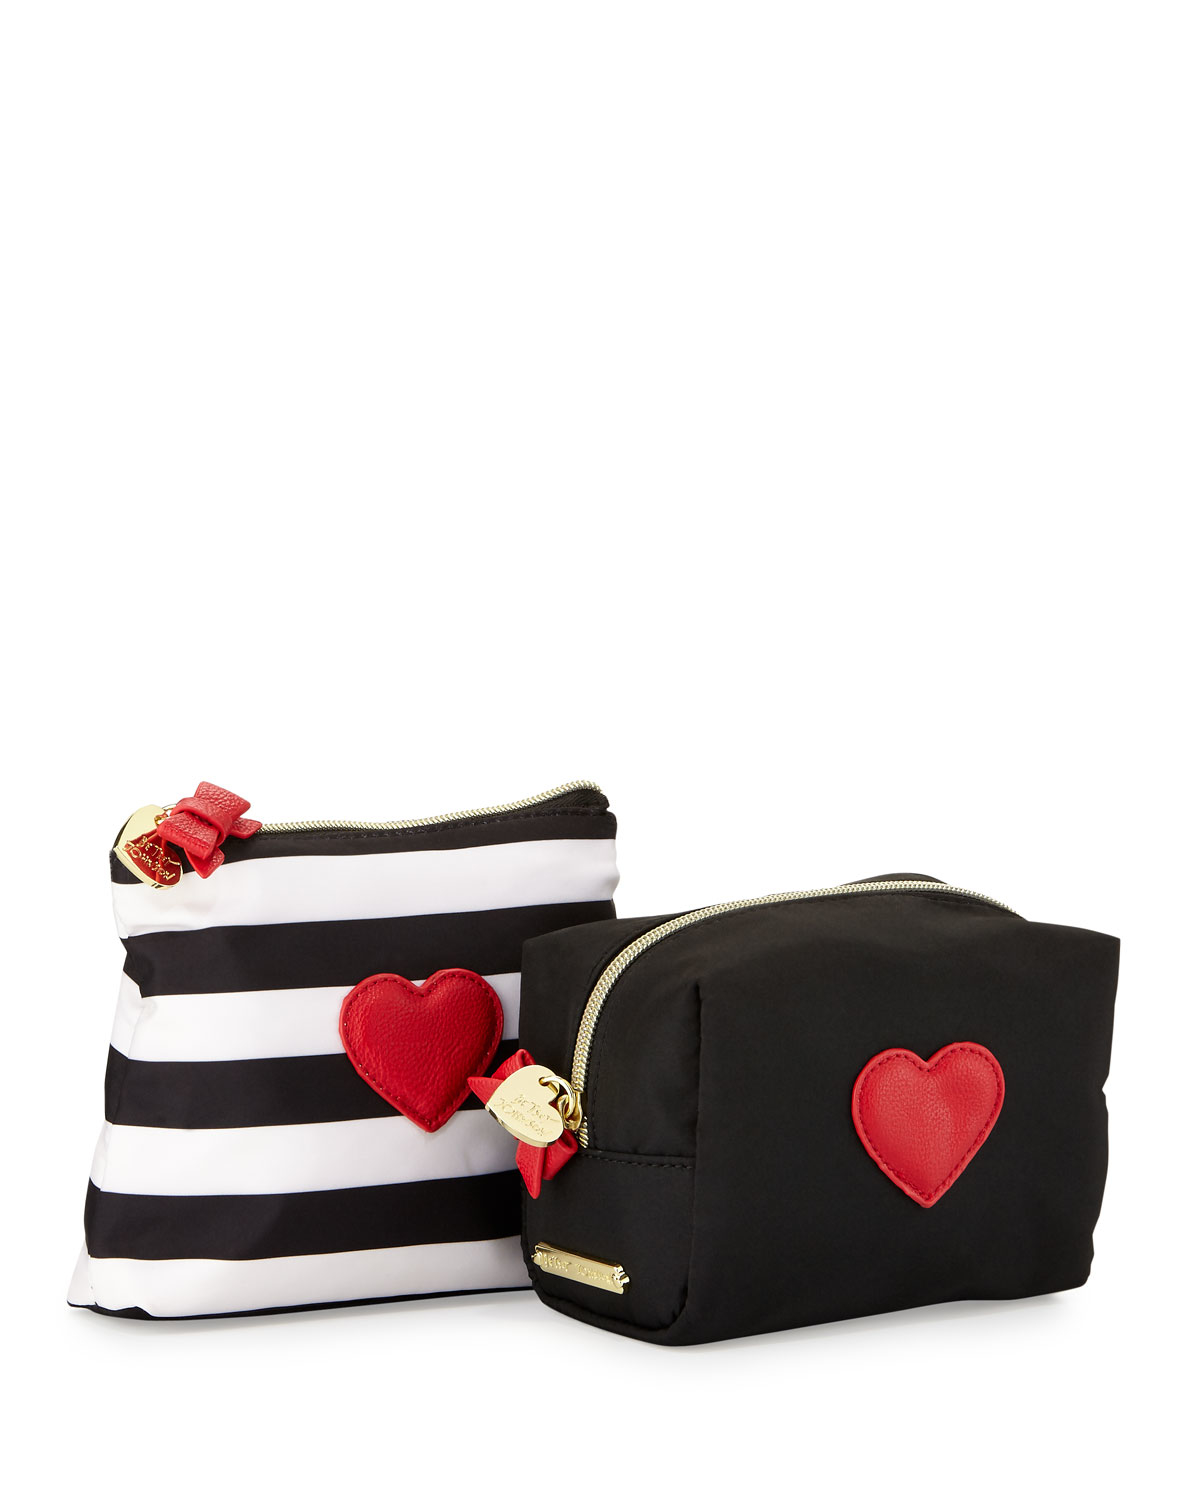 Travel In Style With Betsey Johnson Cosmetic Make Up Bag Large Case Measures 8 5 Long